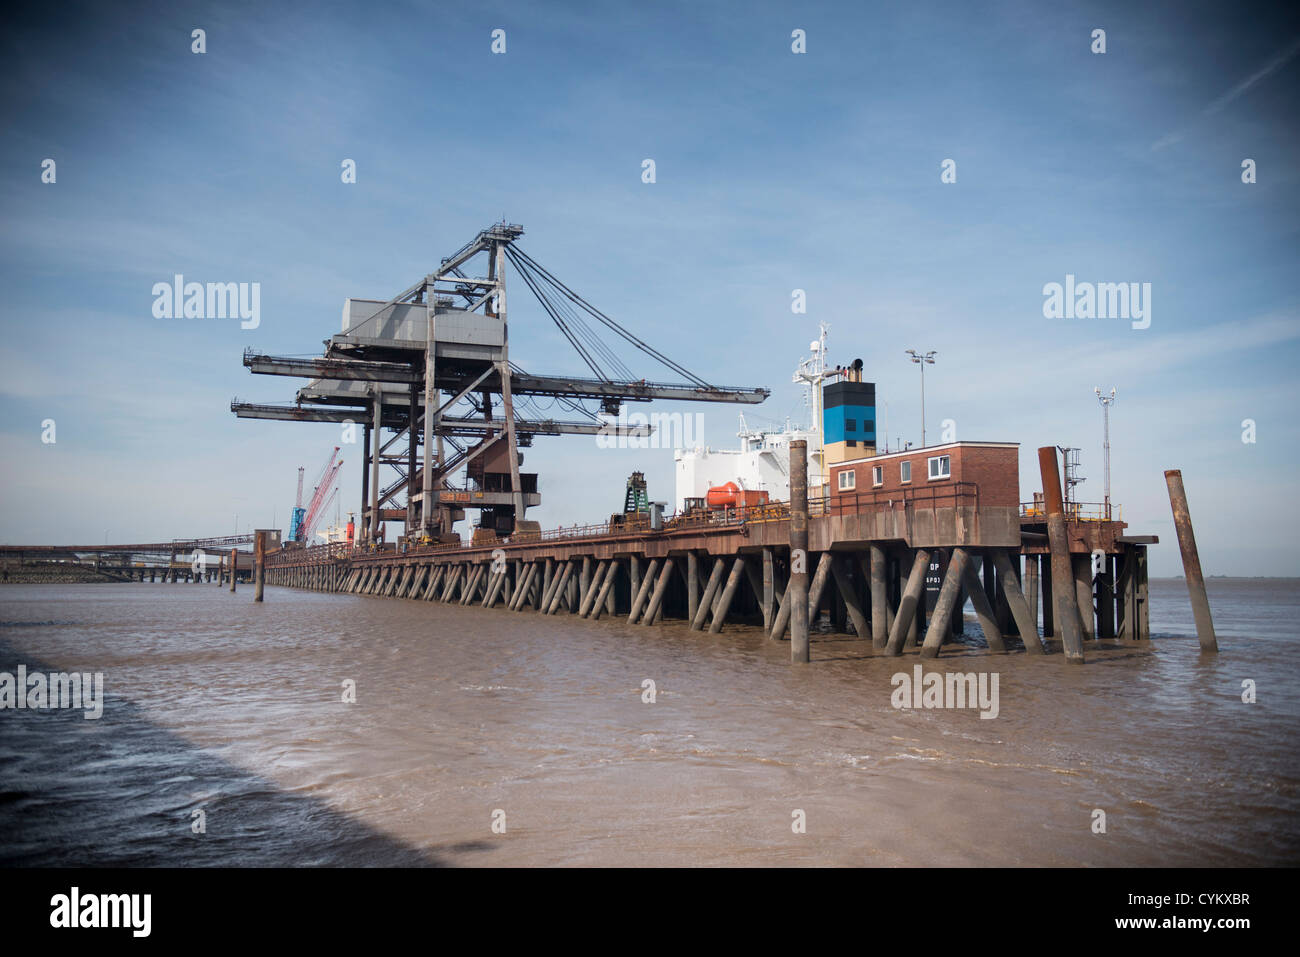 Cranes on wooden pier - Stock Image